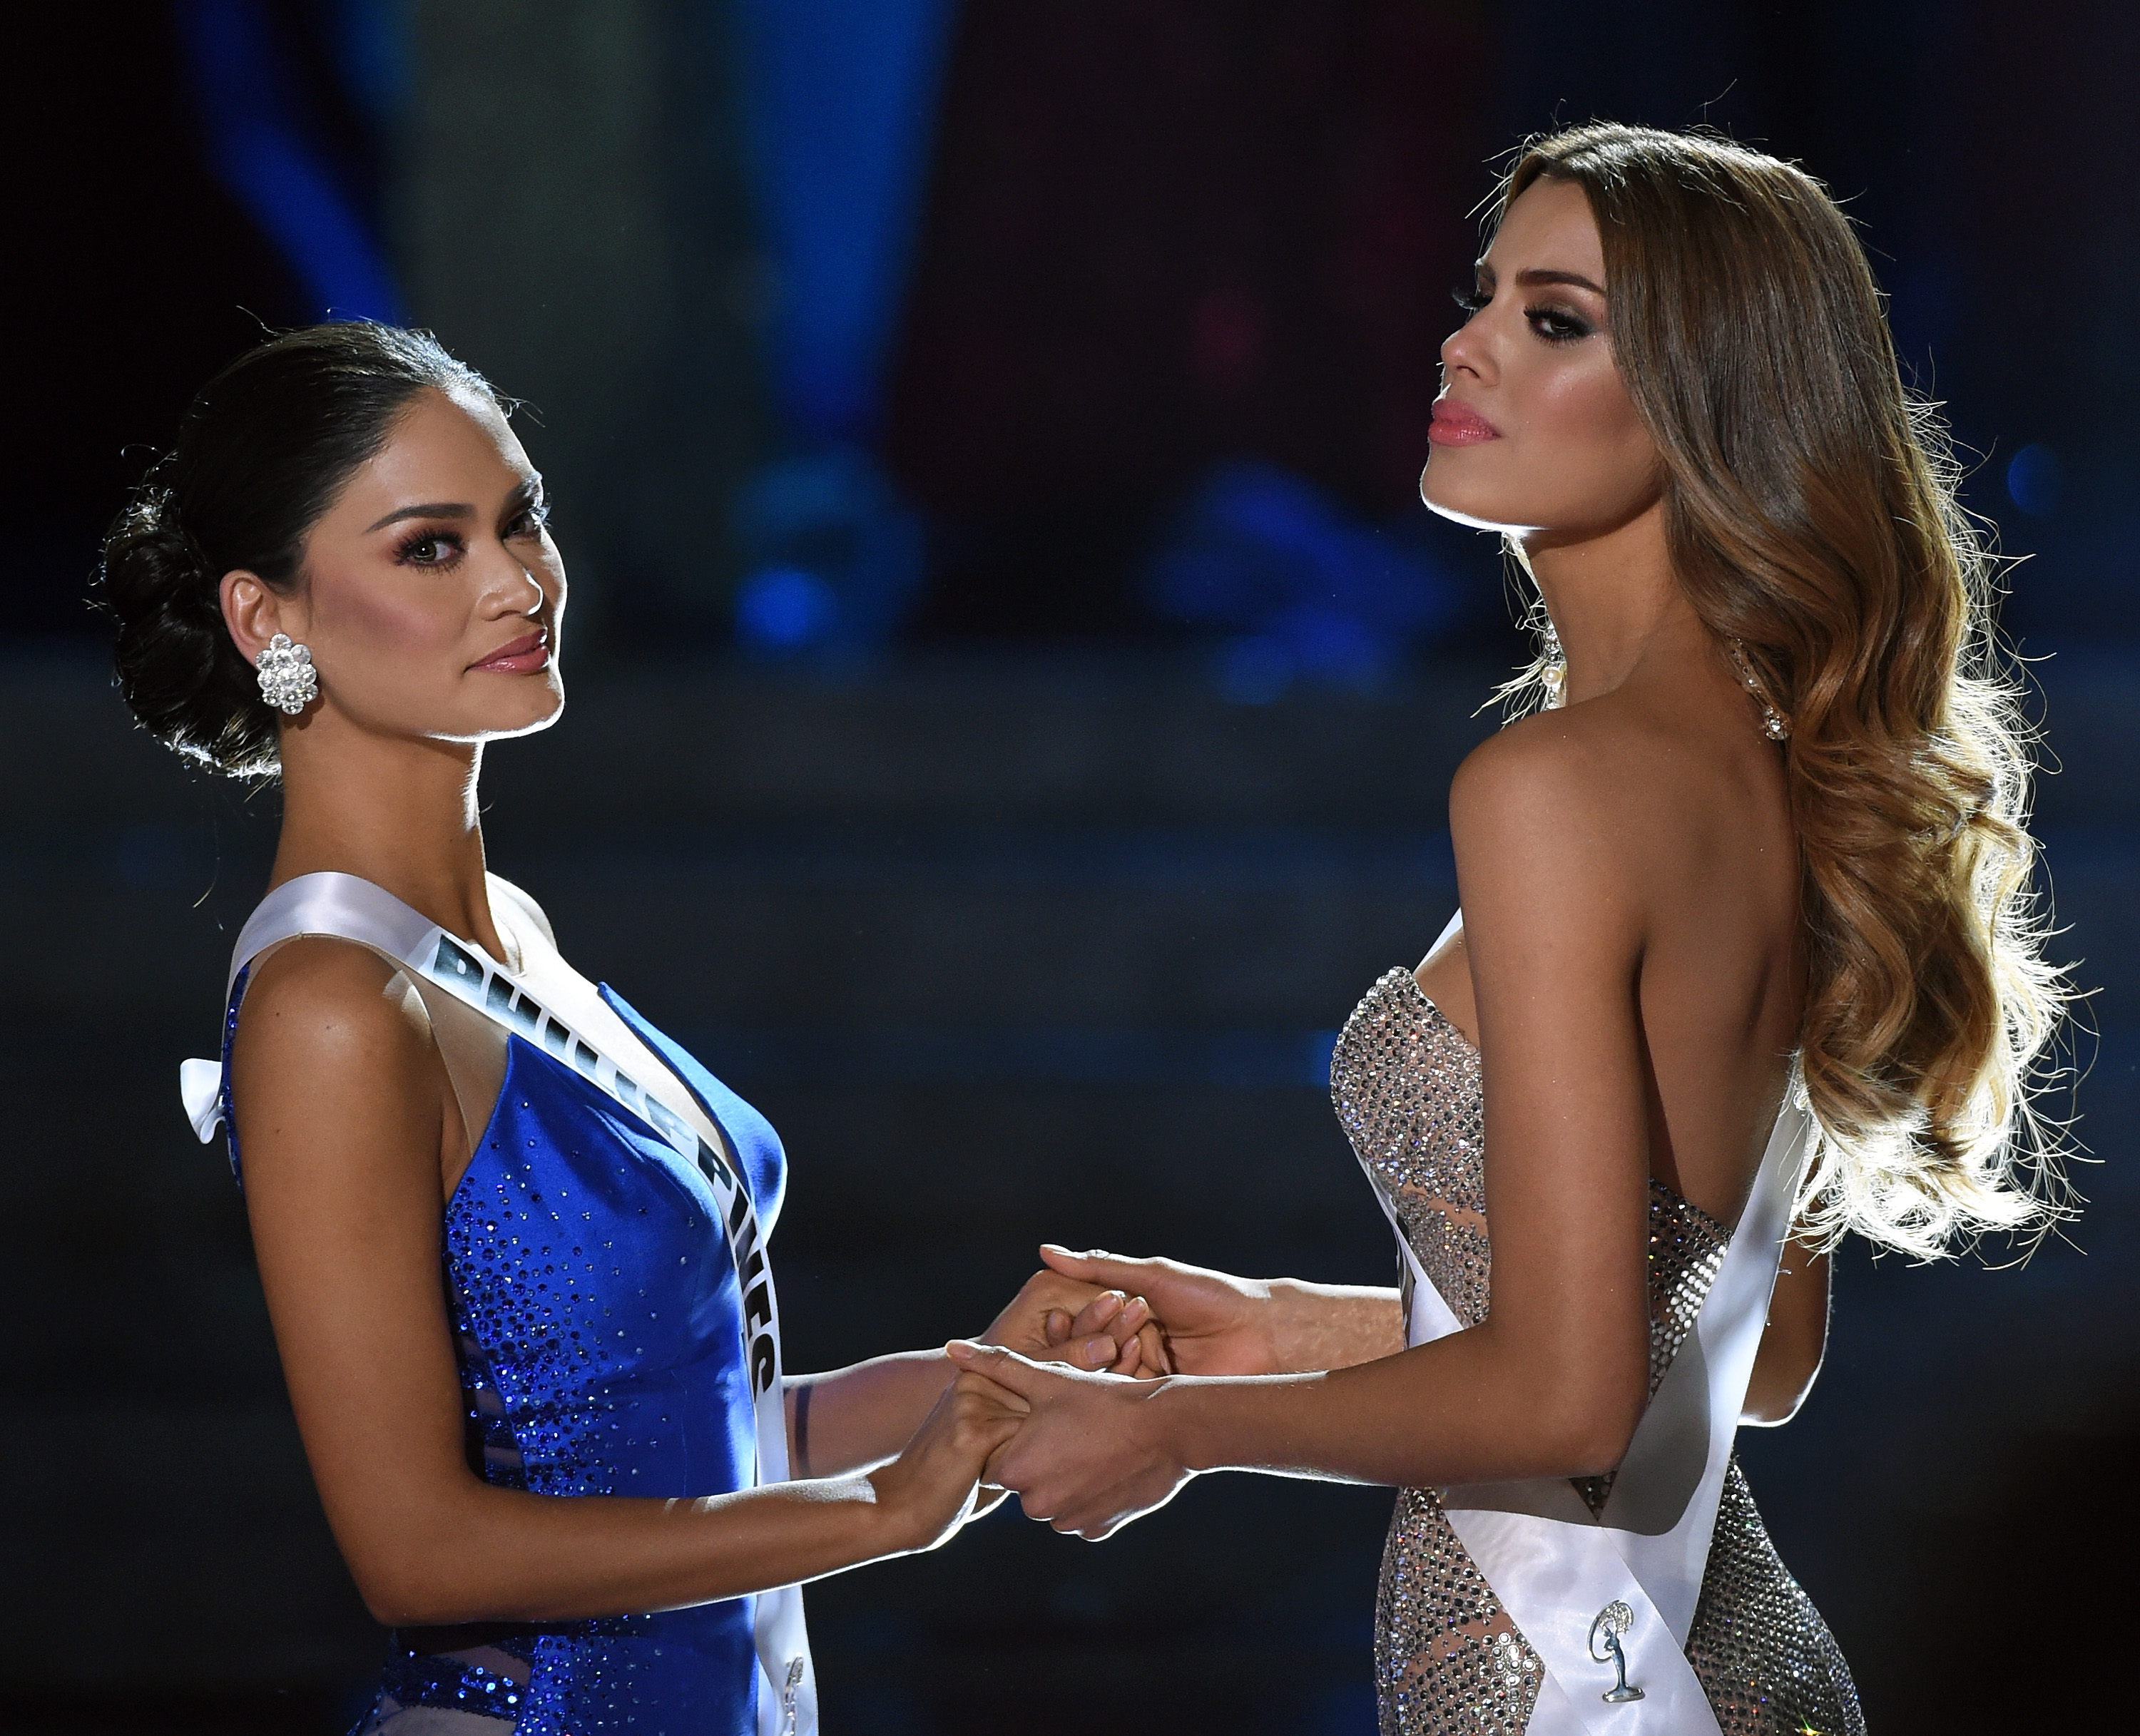 Miss Philippines 2015, Pia Alonzo Wurtzbach (L), and Miss Colombia 2015, Ariadna Gutierrez Arevalo, hold hands as they wait for the judges' final decision in the 2015 Miss Universe Pageant at The Axis at Planet Hollywood Resort & Casino on December 20, 2015 in Las Vegas, Nevada.